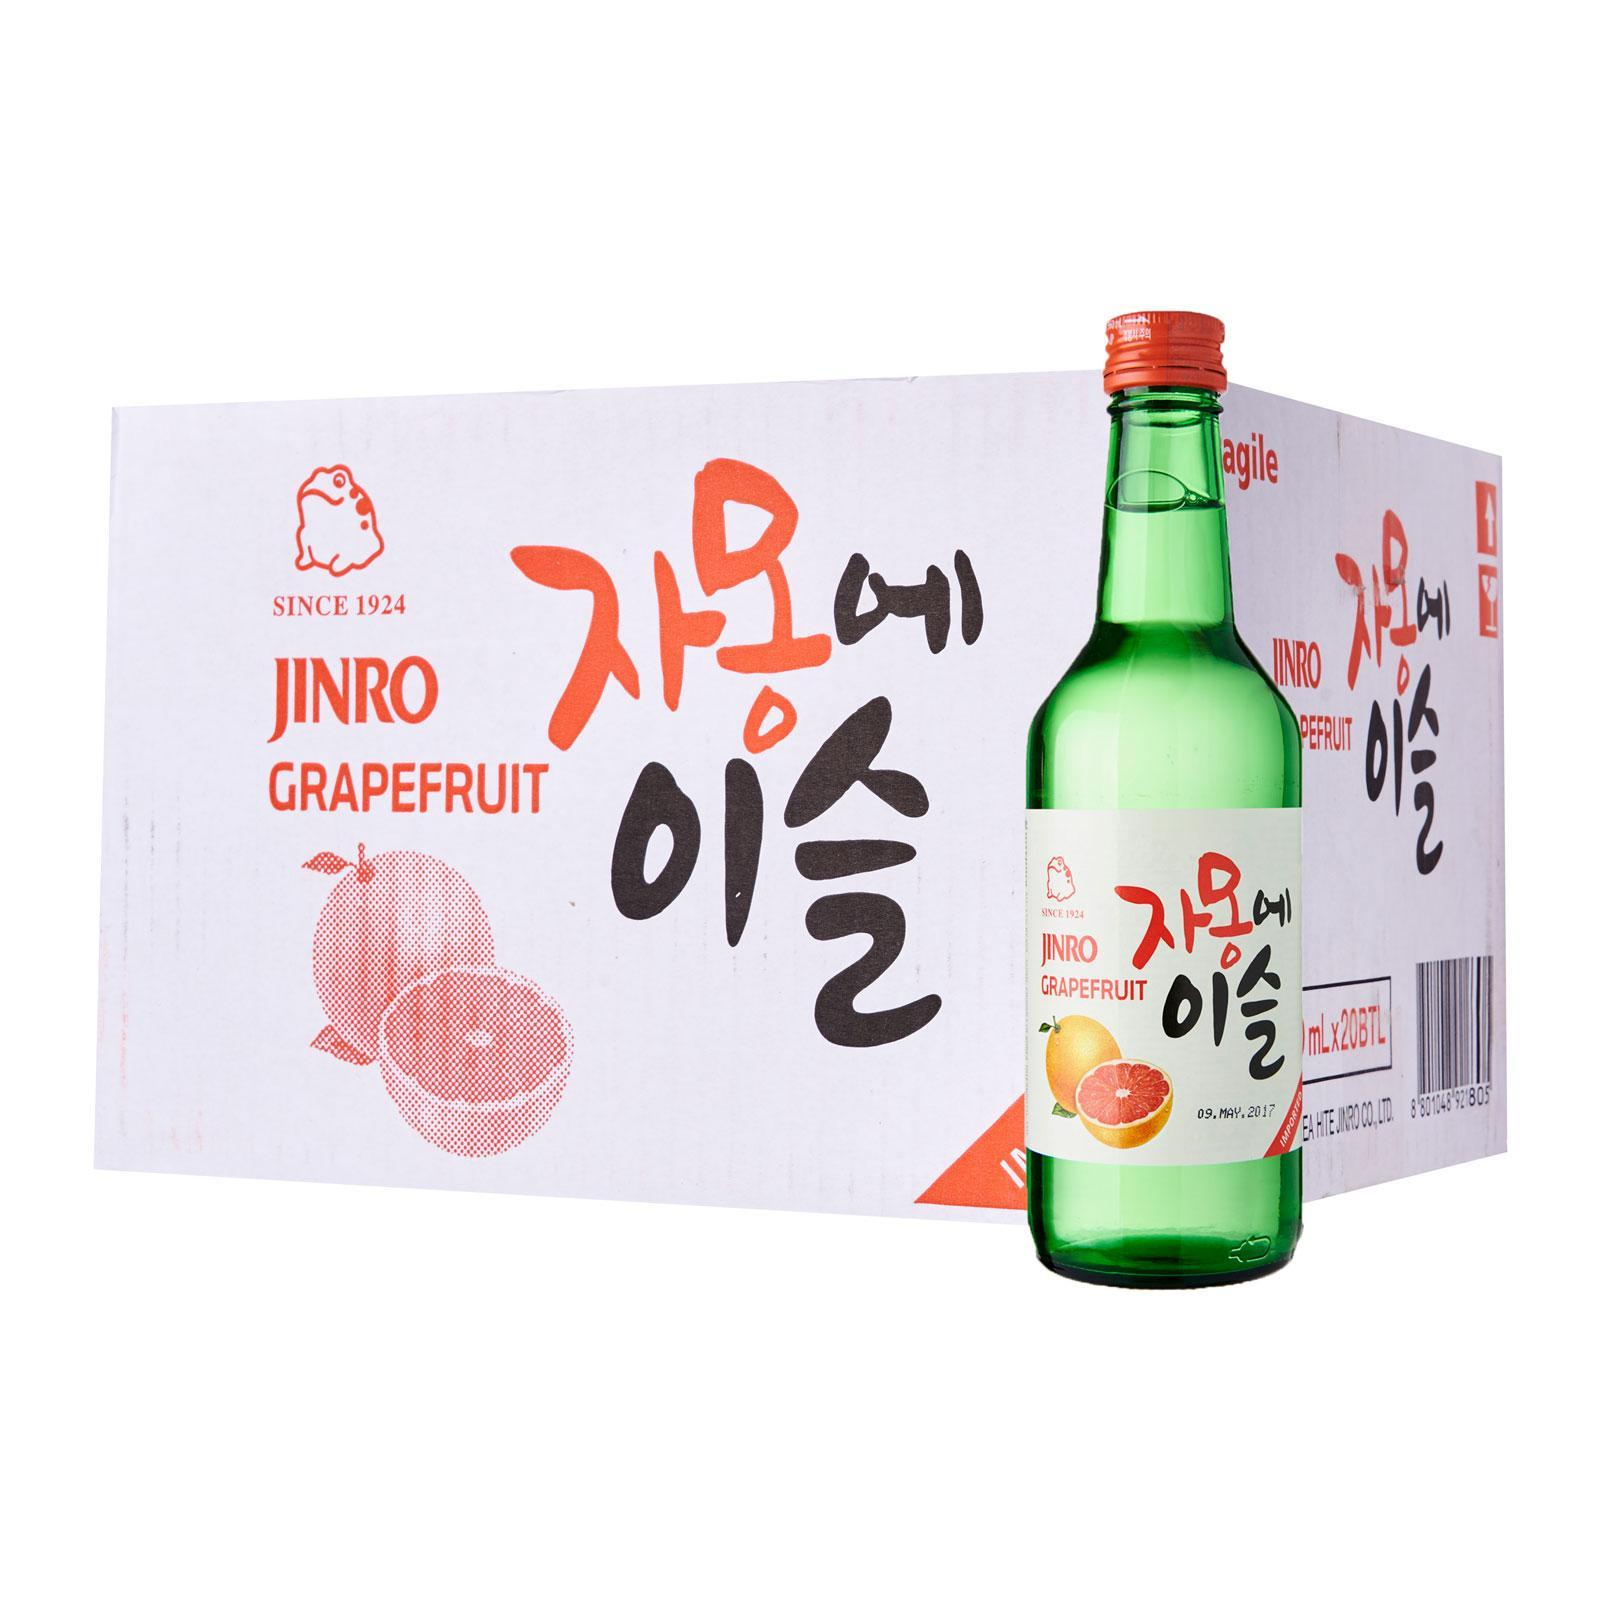 Jinro Grapefruit Soju Carton (20 Bottles) By Geonbae.